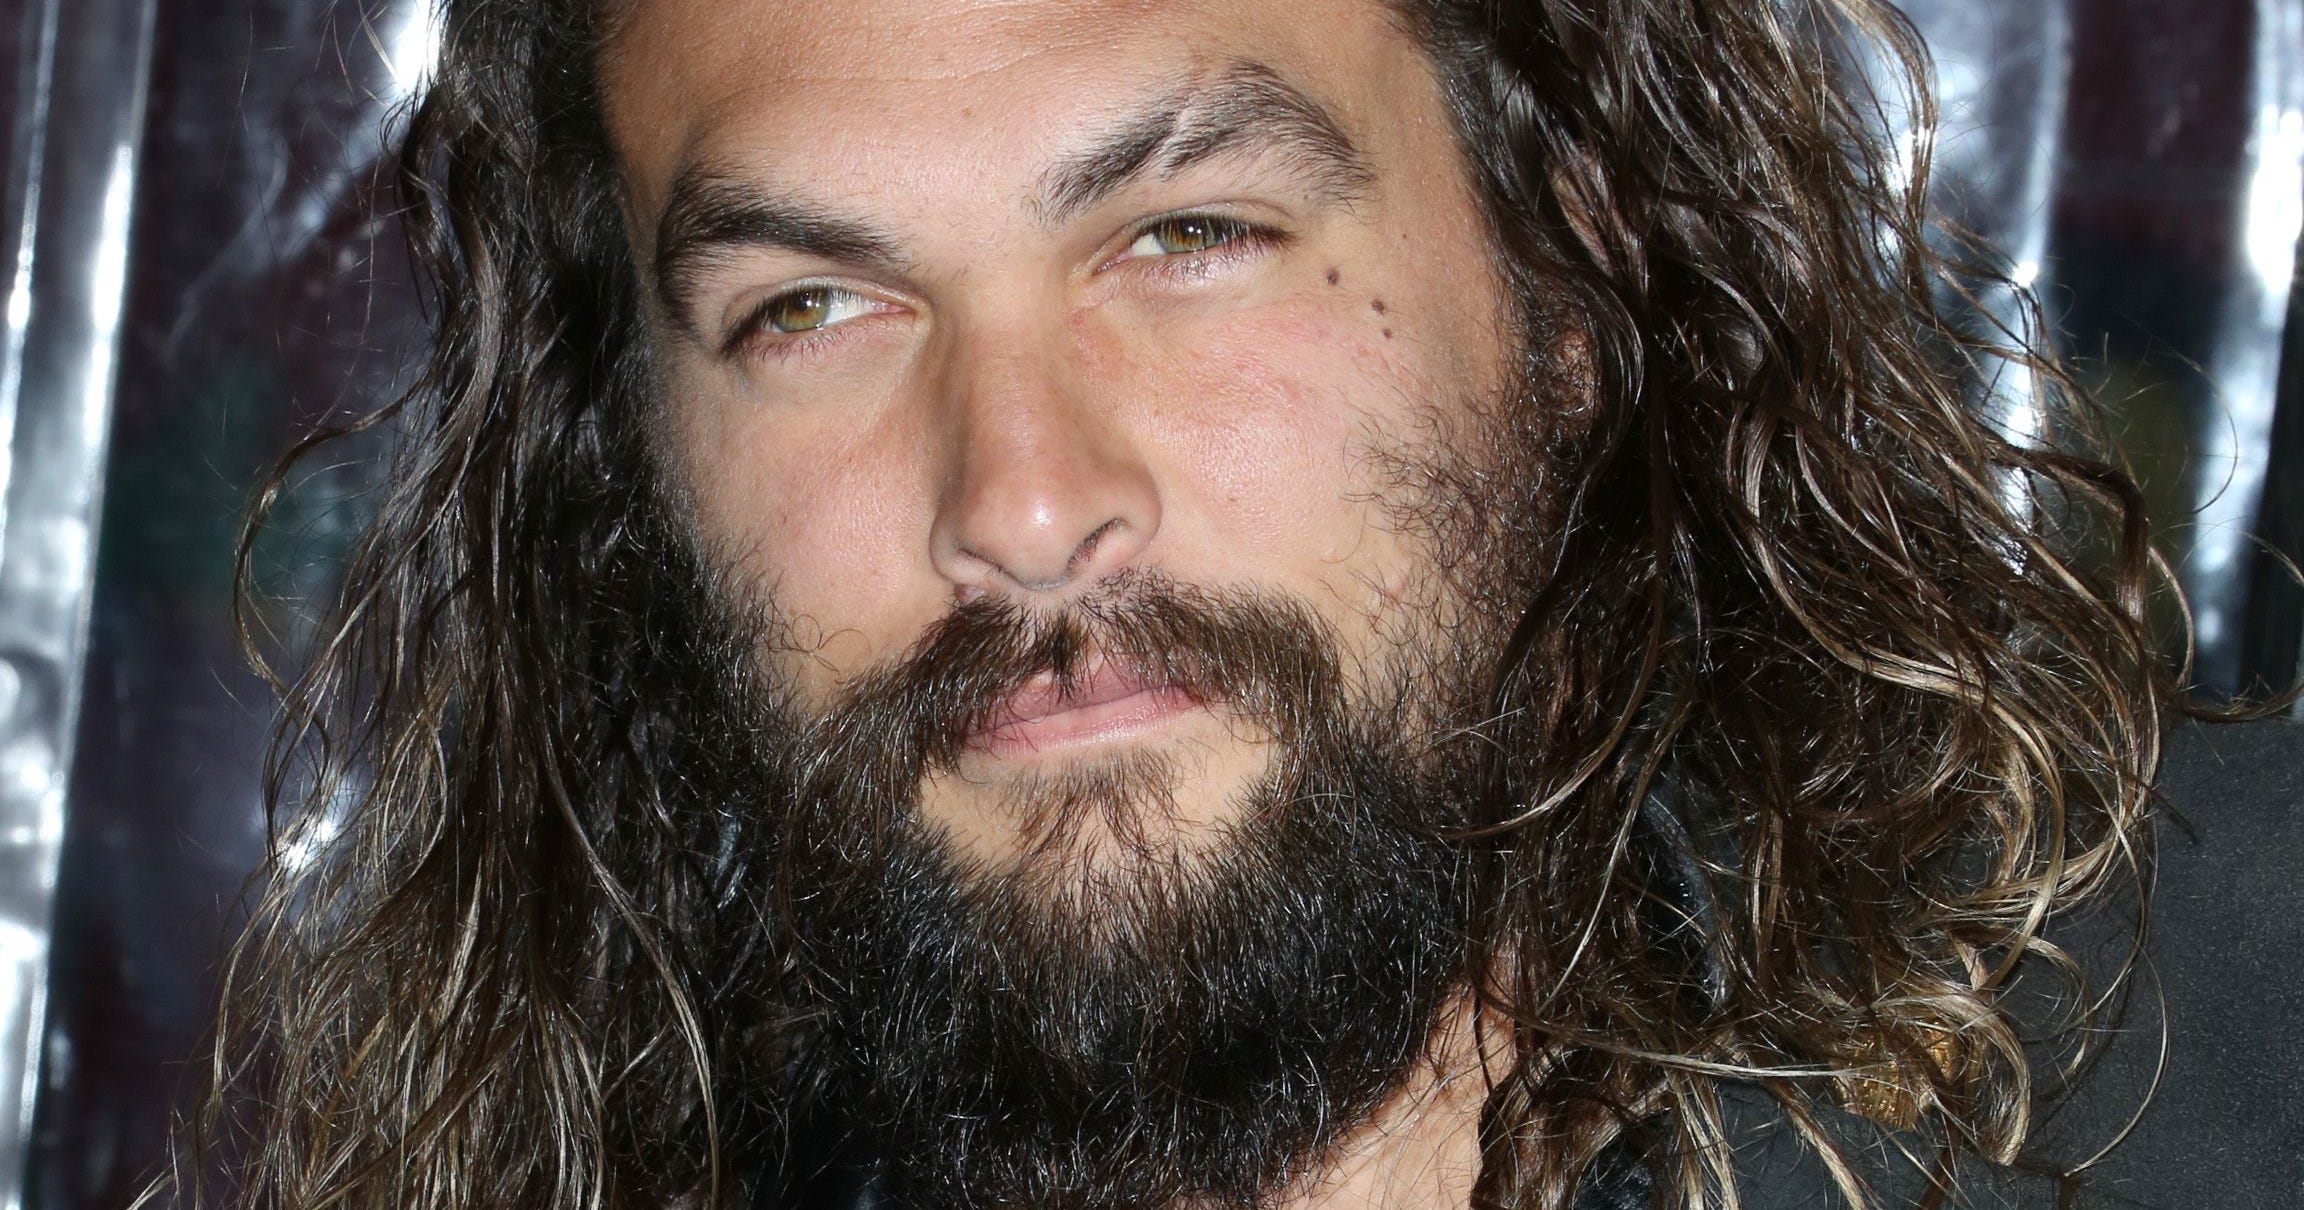 Jason Momoa Daughter Flea Red Hot Chili Peppers